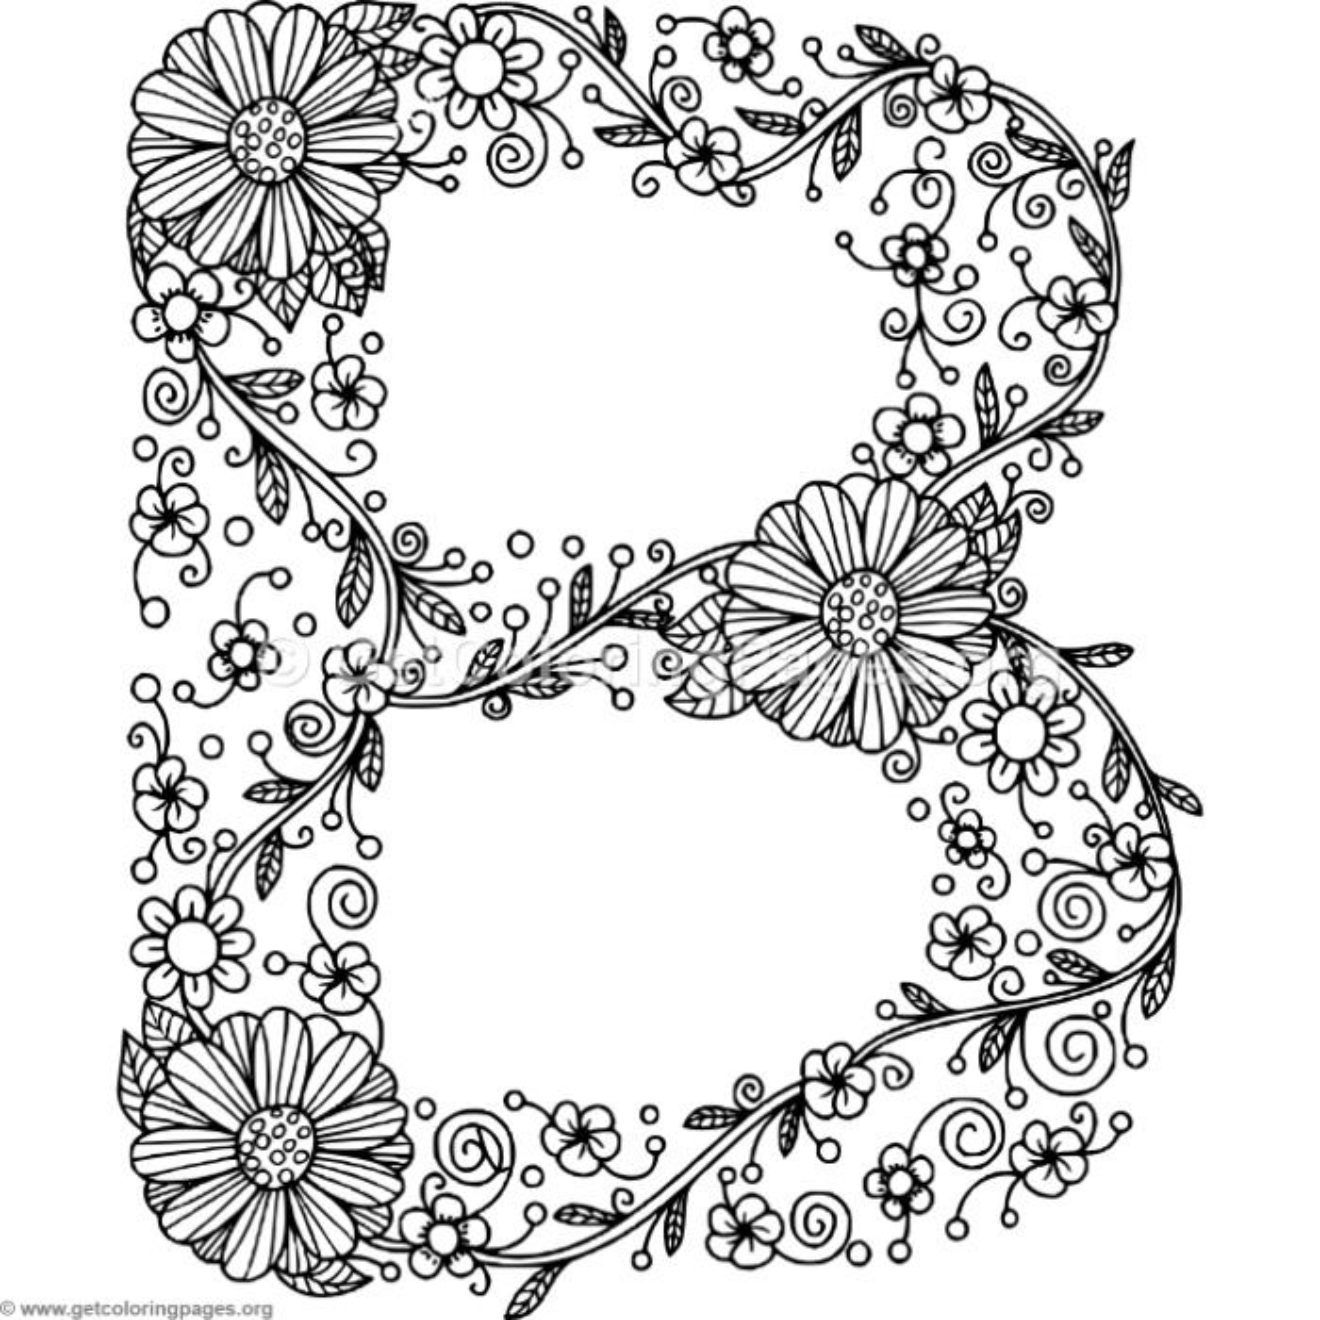 floral alphabet coloring book GetColoringPages